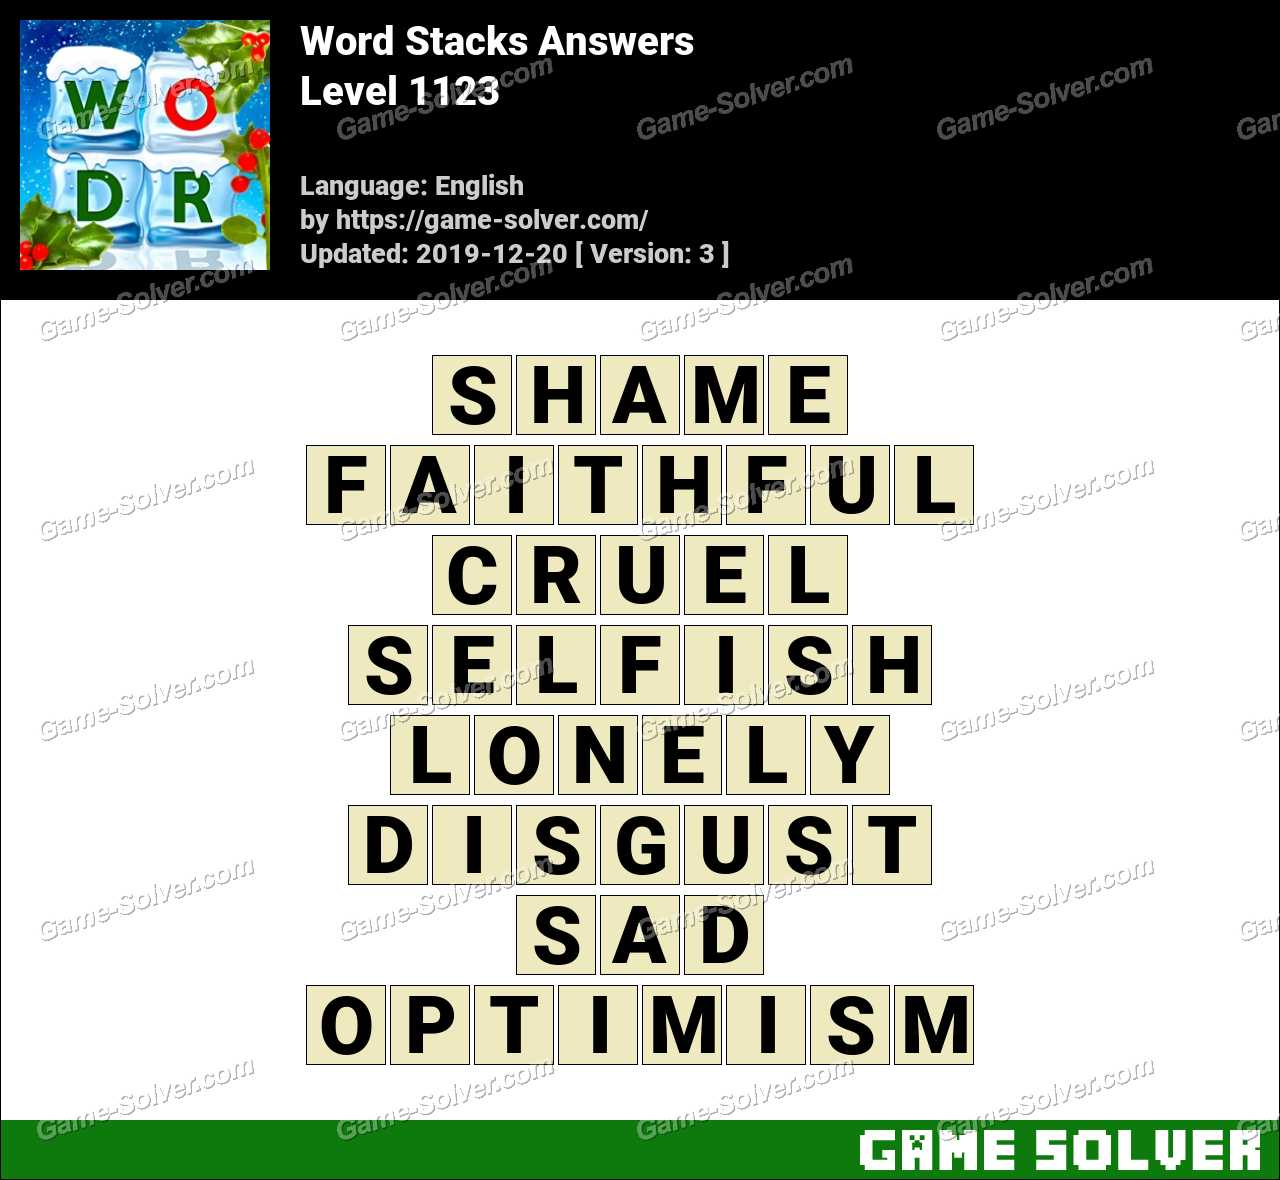 Word Stacks Level 1123 Answers